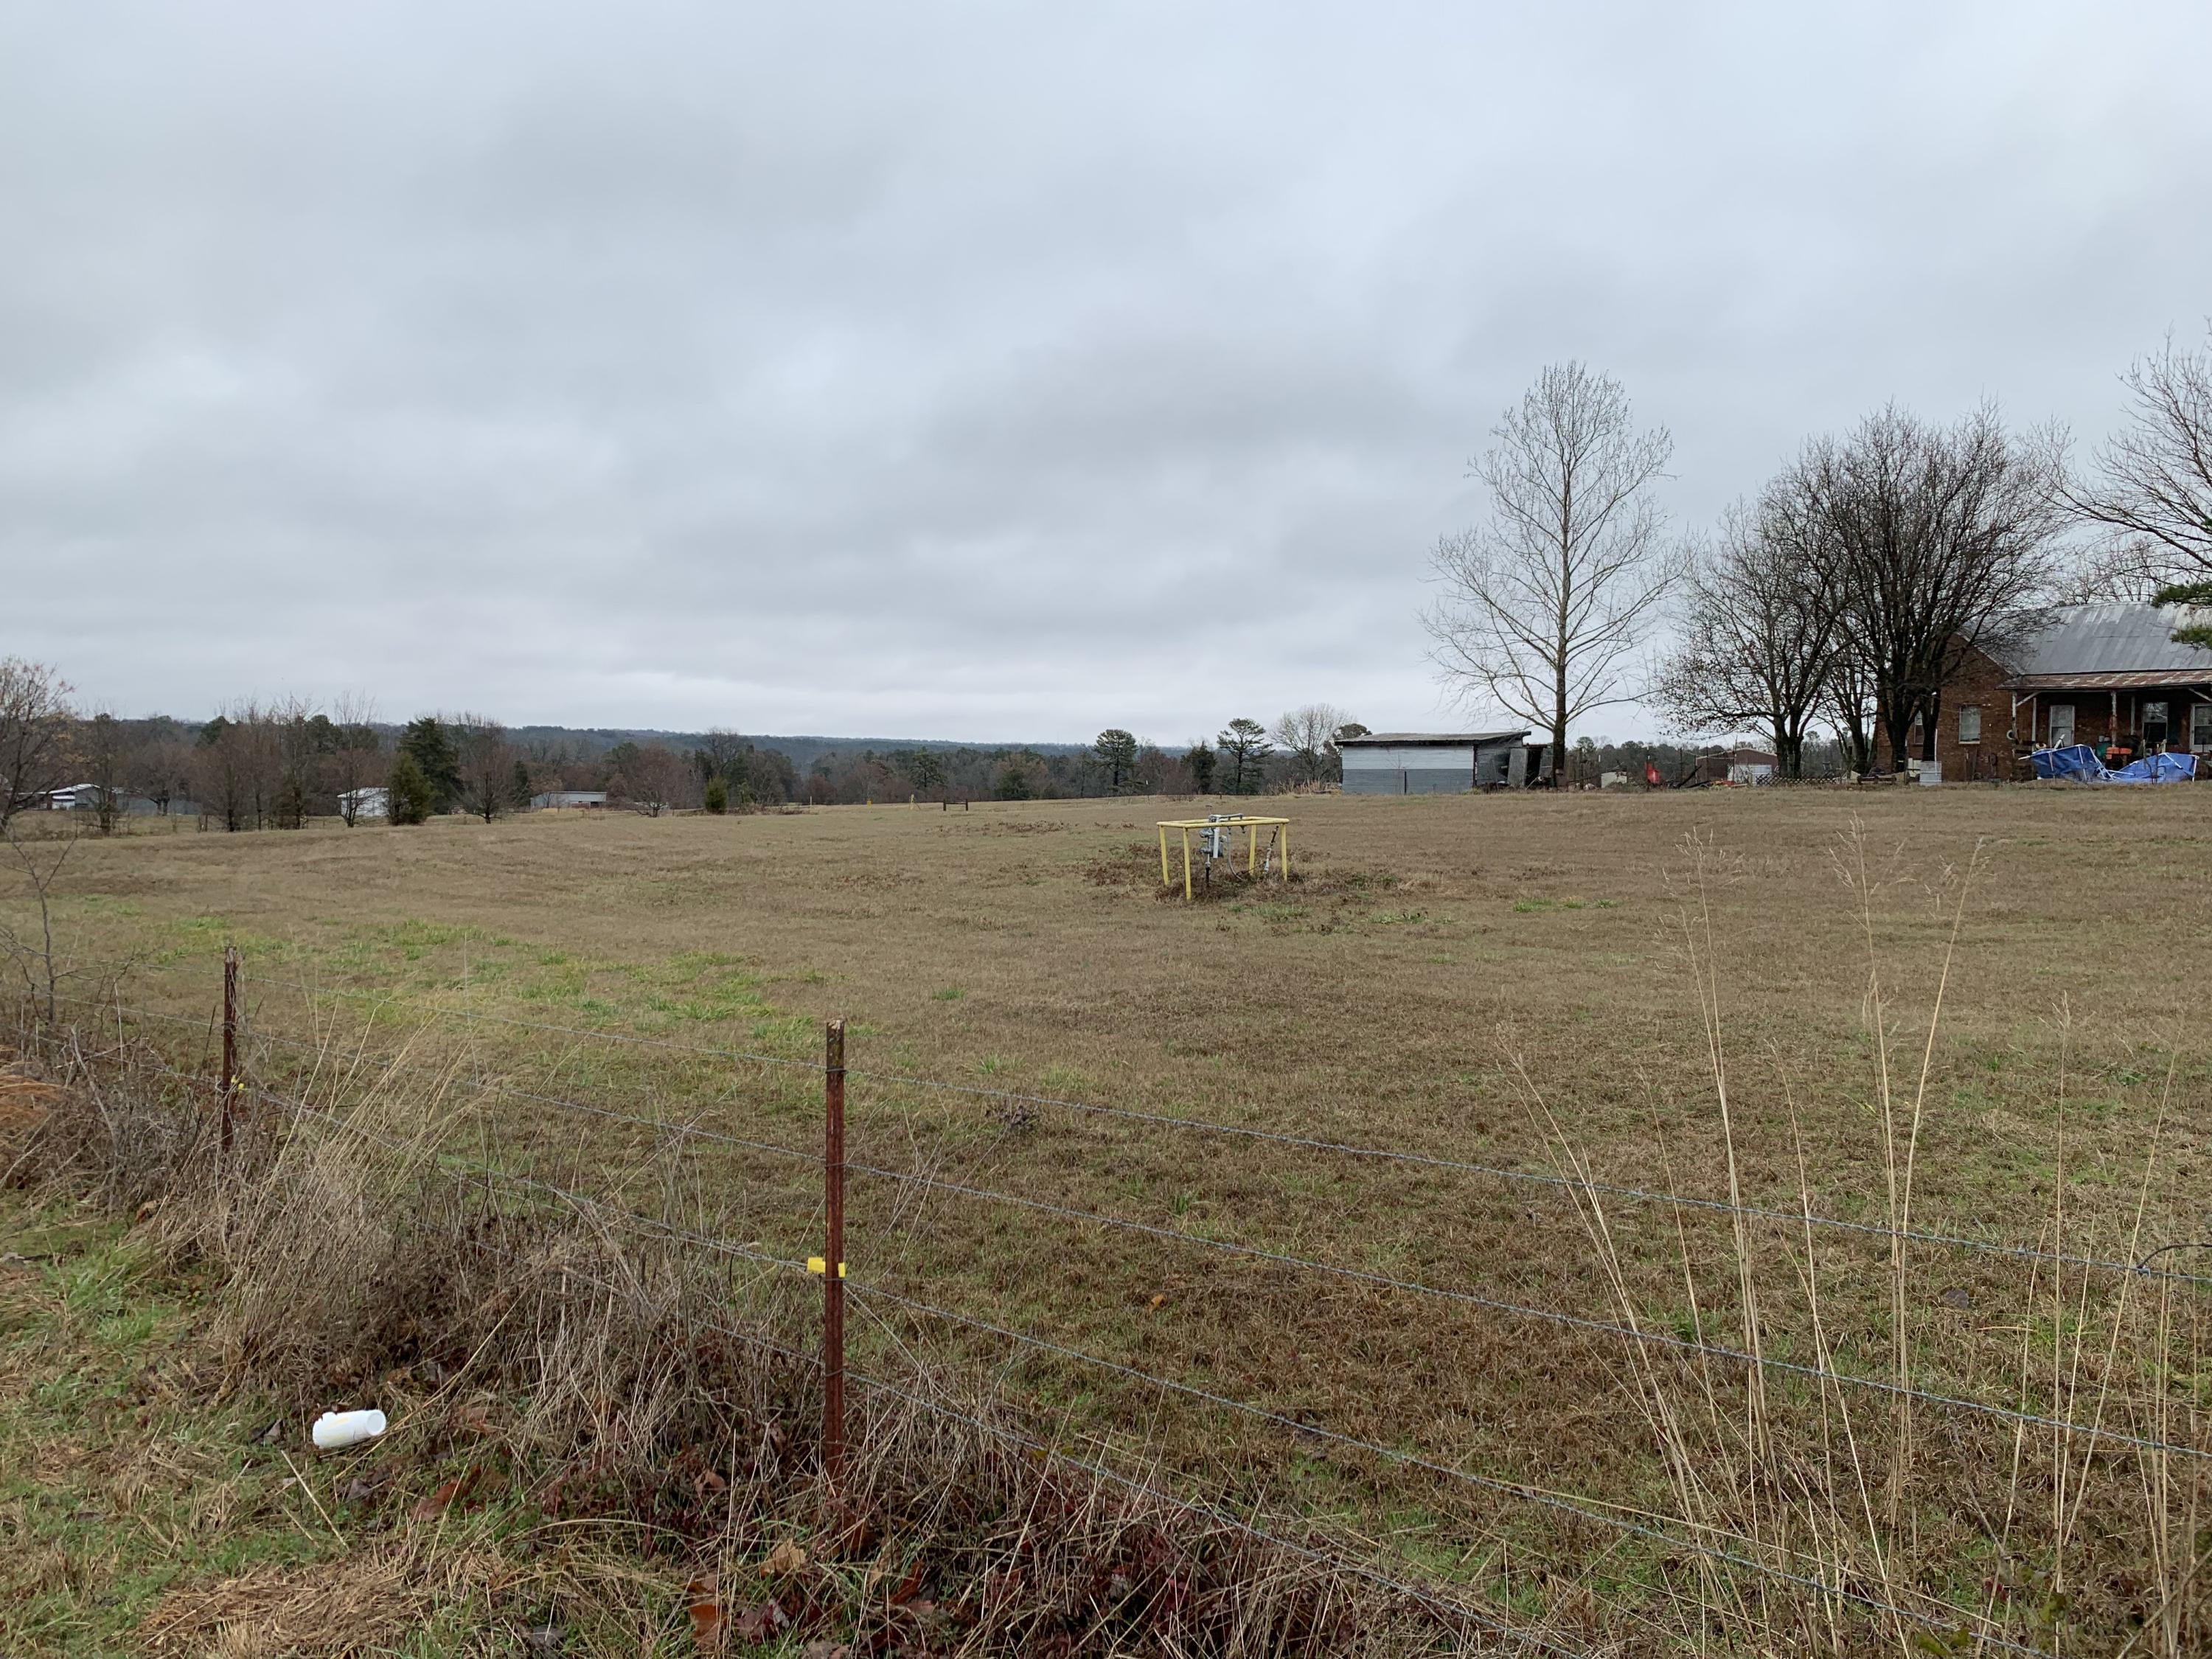 Large photo 3 of land for sale at 2 Co Rd 1760 , London, AR, listed by Coldwell Banker Premier Realty